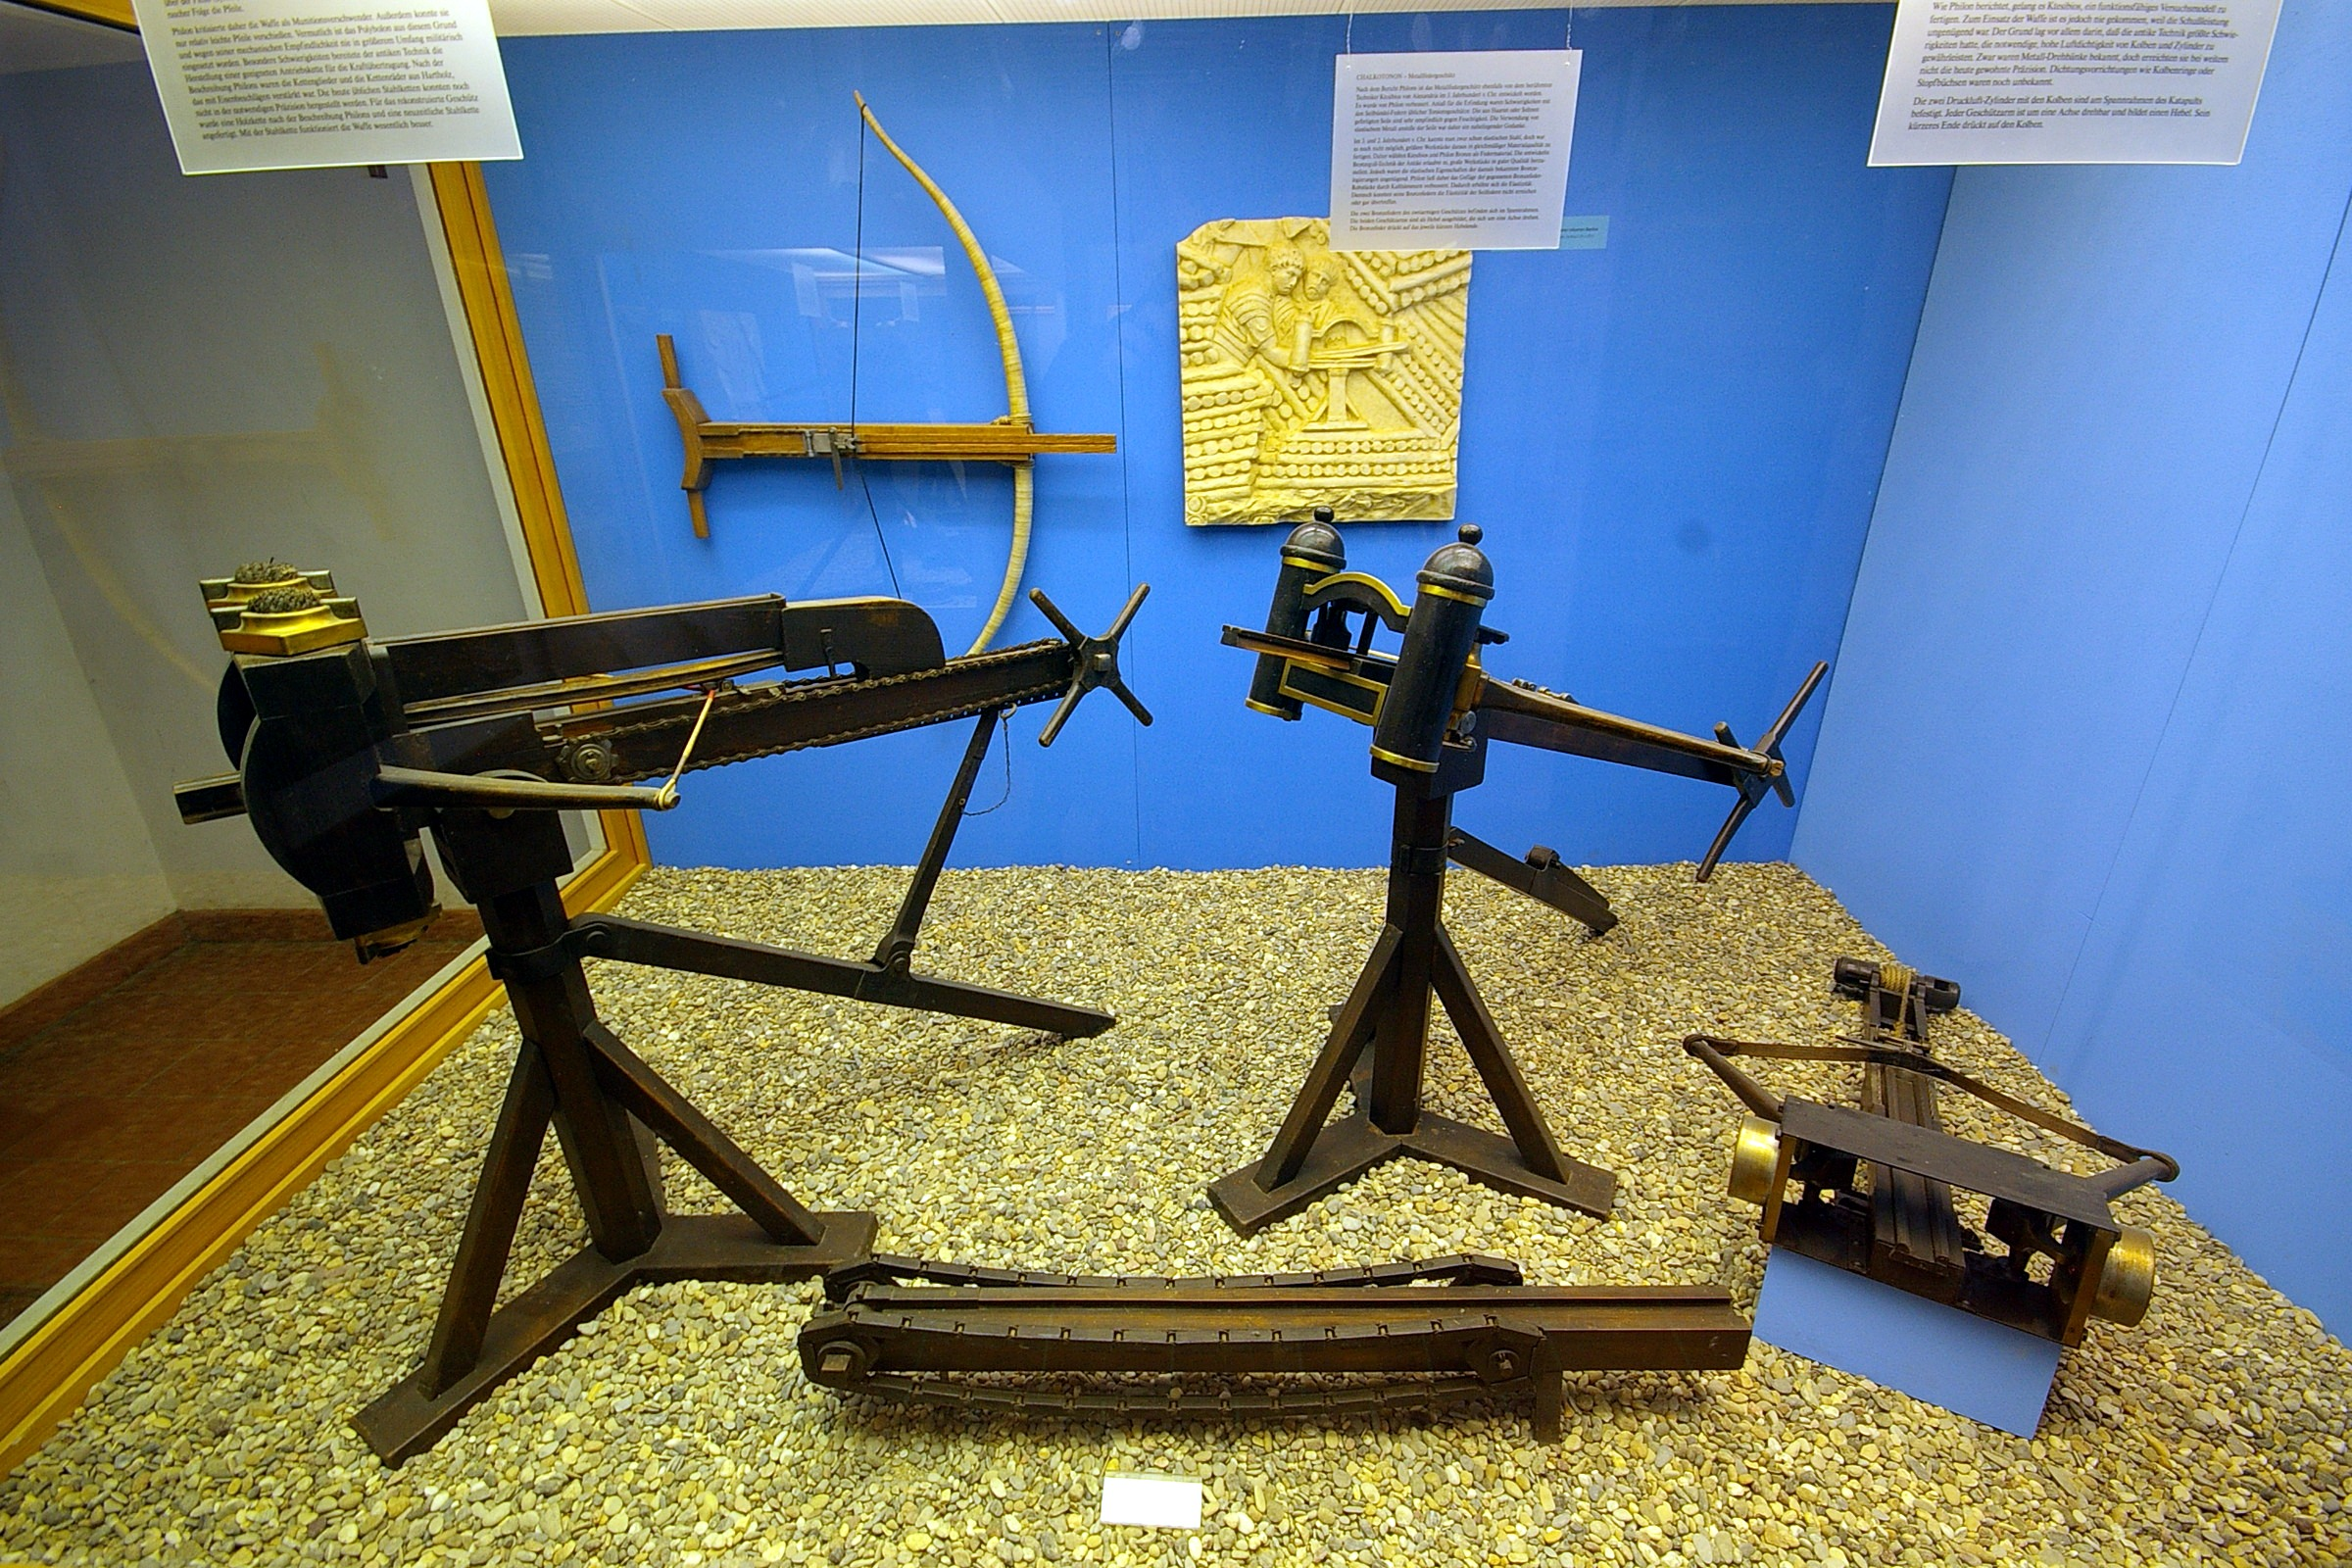 Reconstructions of ancient mechanical artillery at the Saalburgmuseum in Bad Homburg, Germany